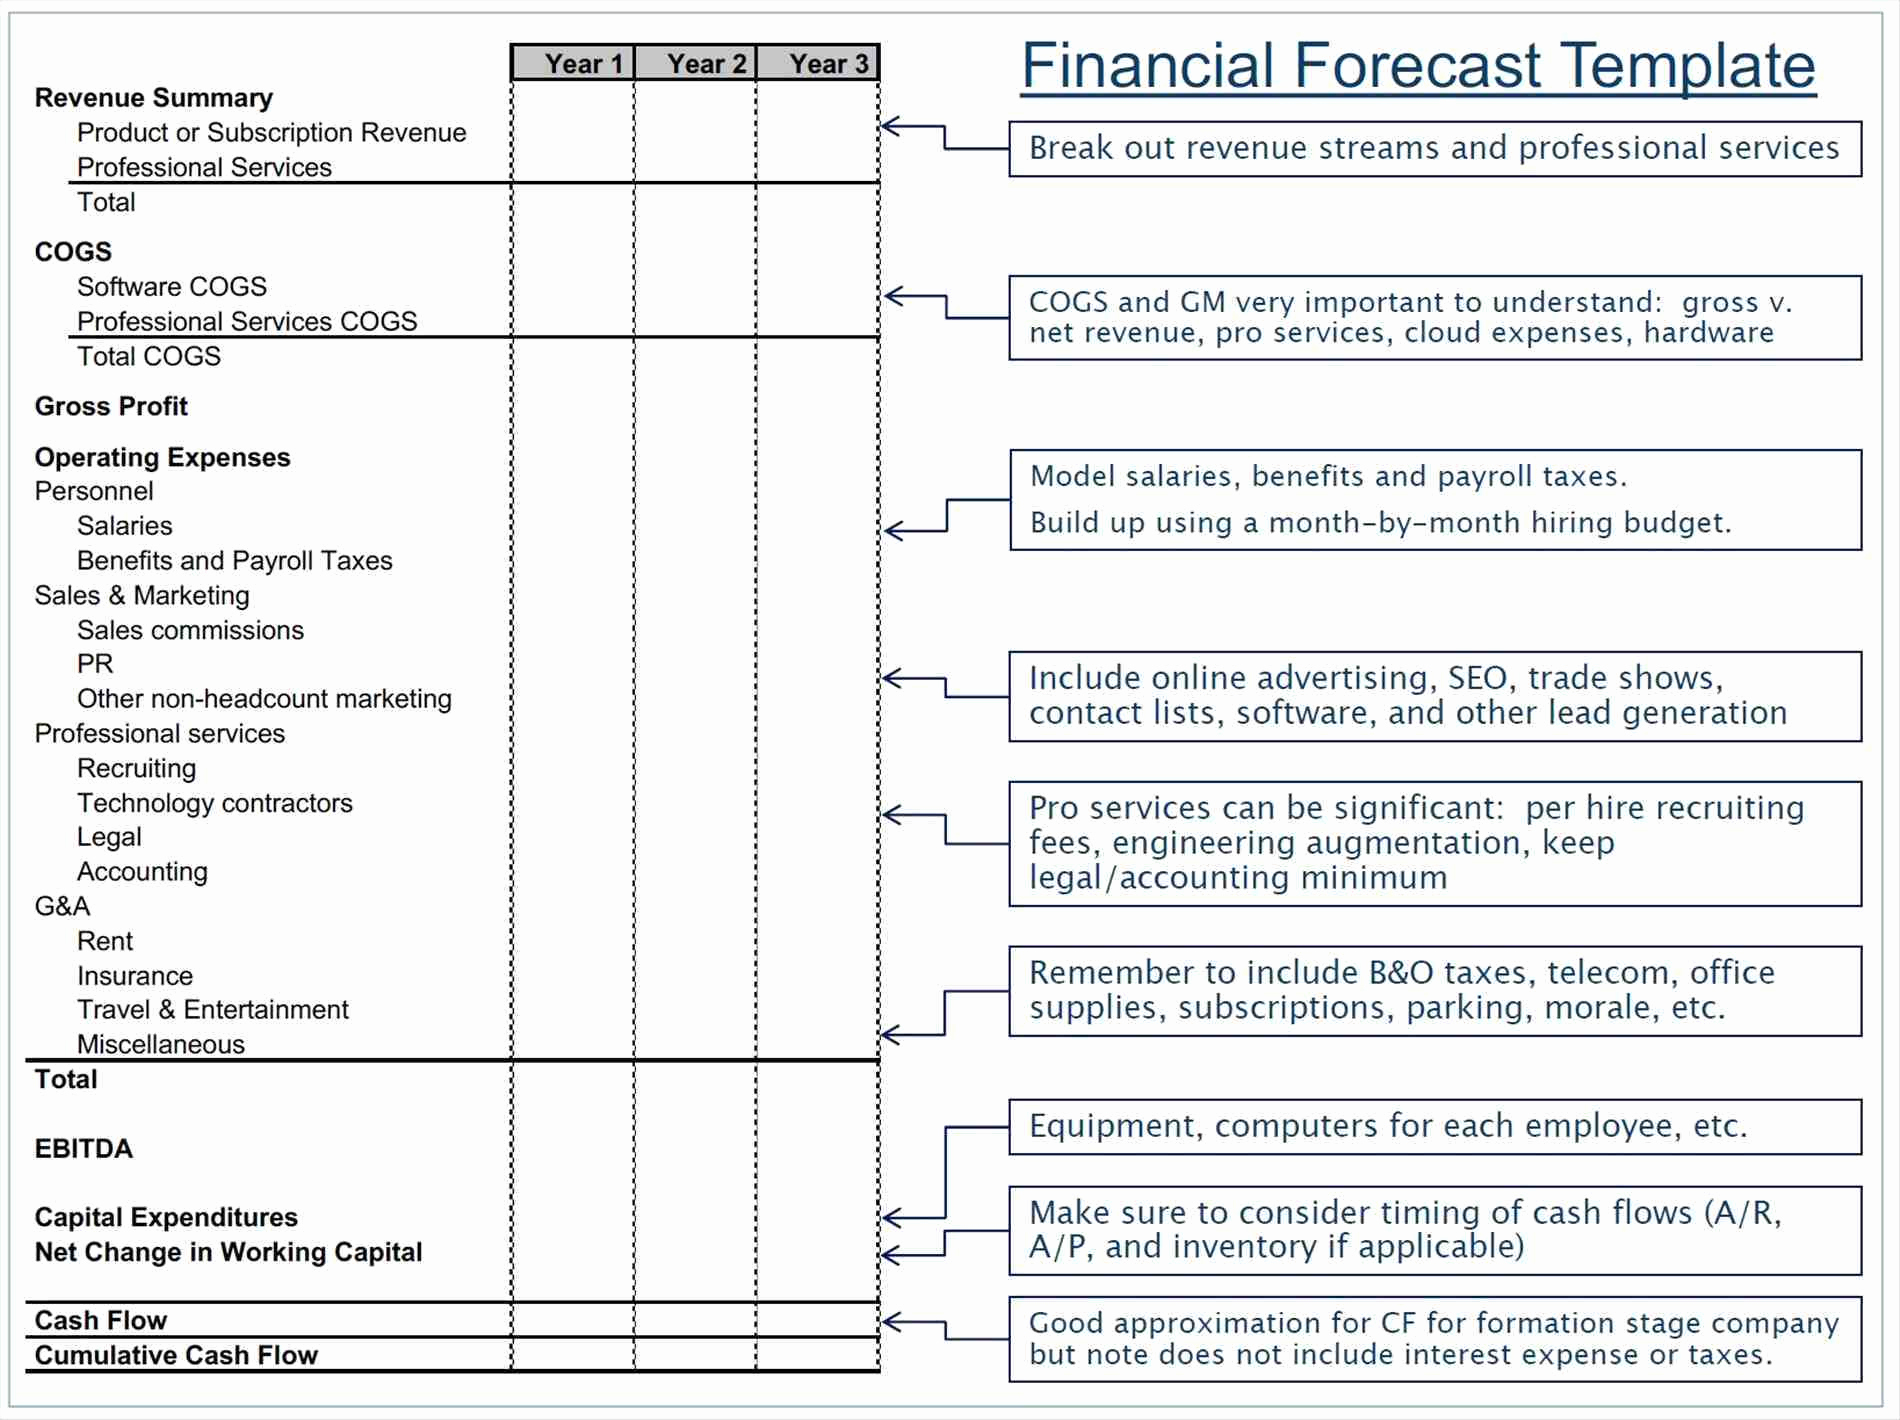 Pro Forma Sales Forecast Template Fresh Financial Forecasting Inside Sales Forecast Template For Services